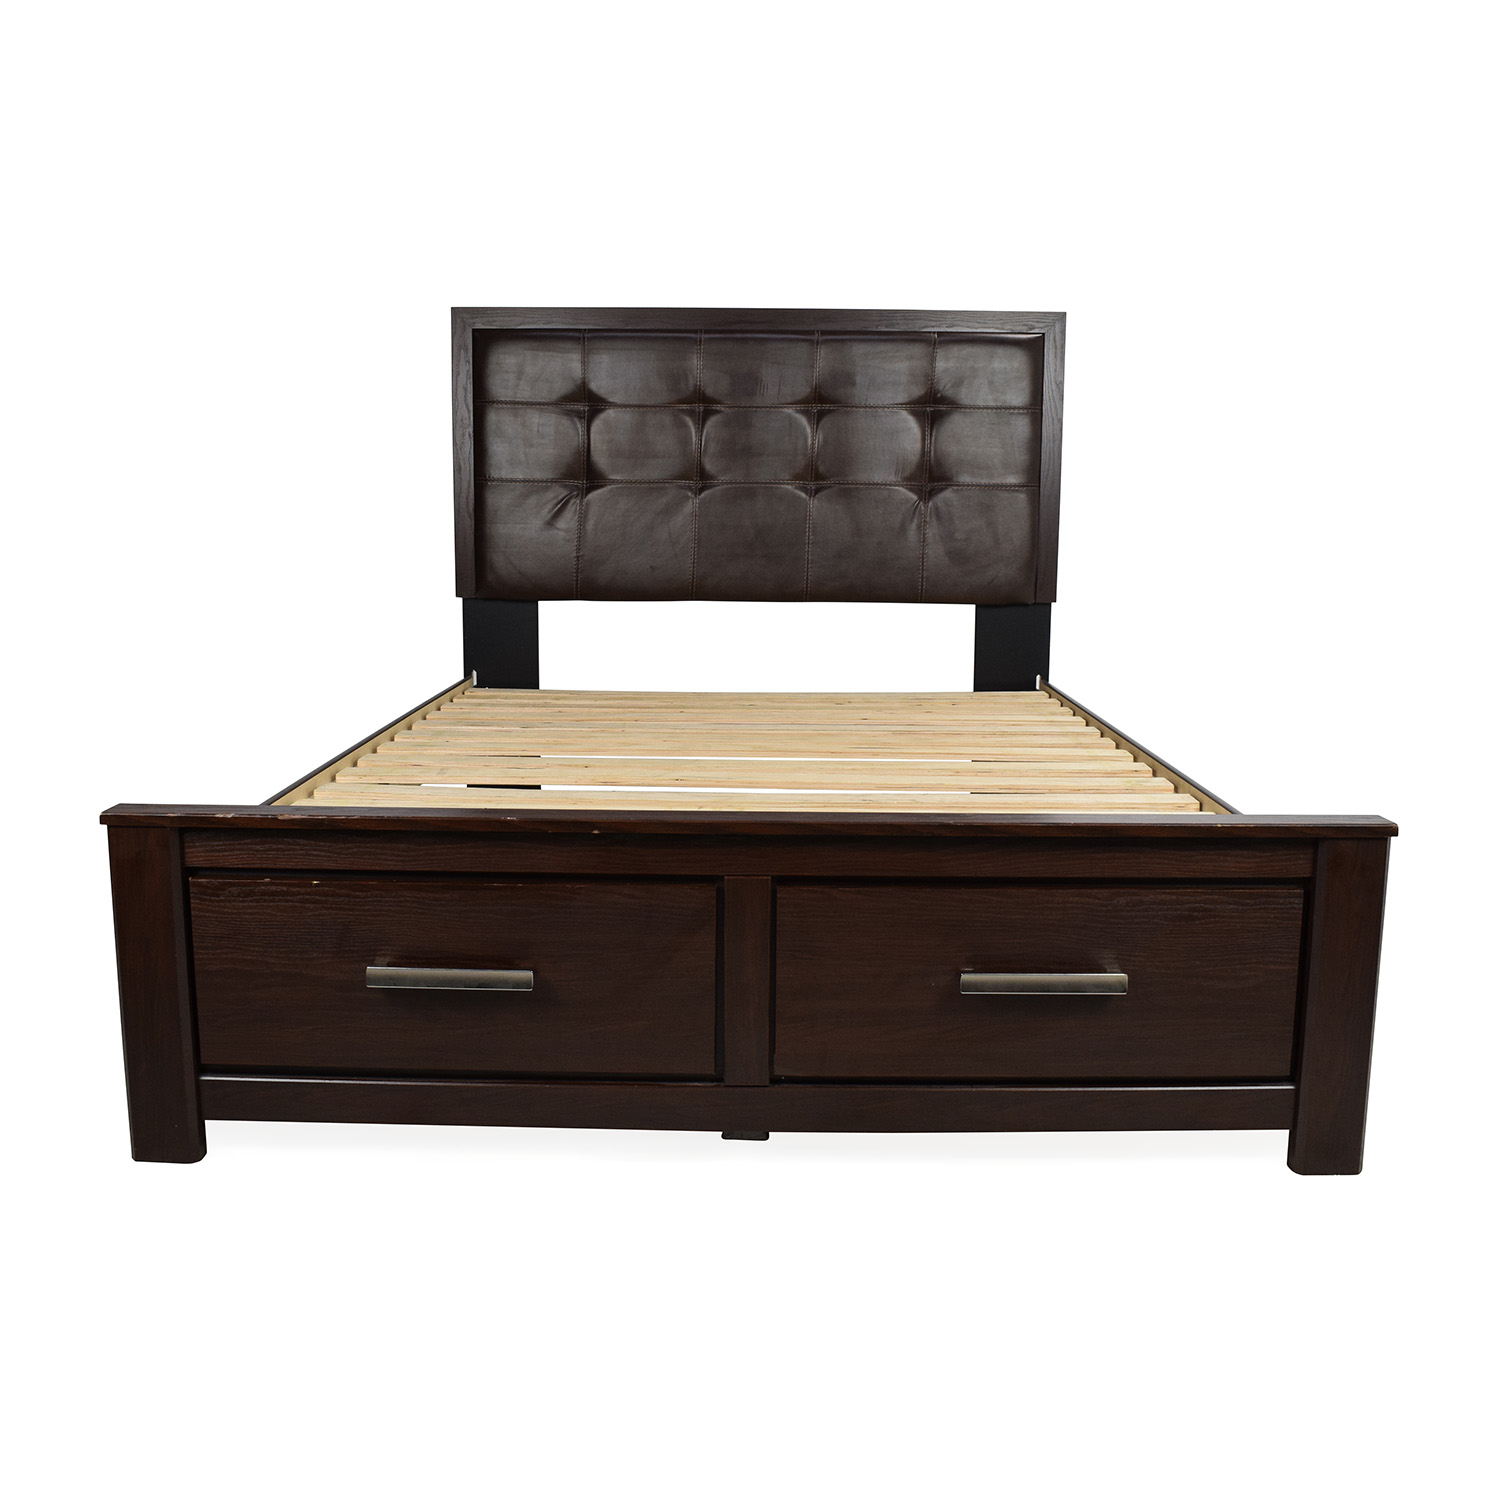 57 Off Ashley Furniture Ashley Furniture Aleydis Queen Storage Bed Beds